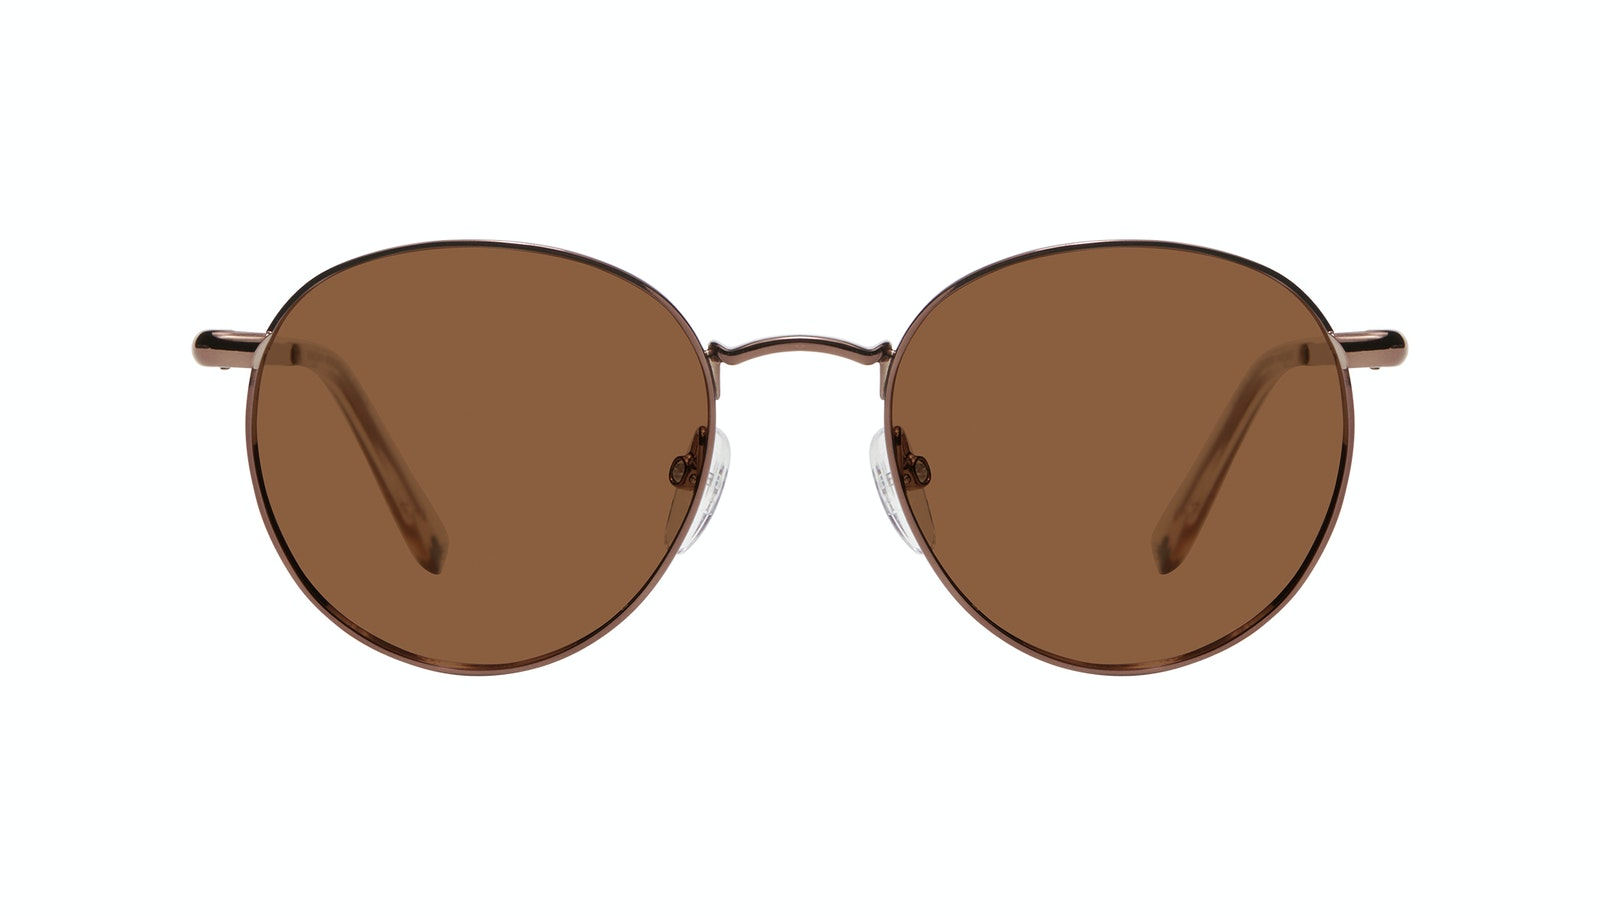 Affordable Fashion Glasses Round Sunglasses Women Dynasty M Copper